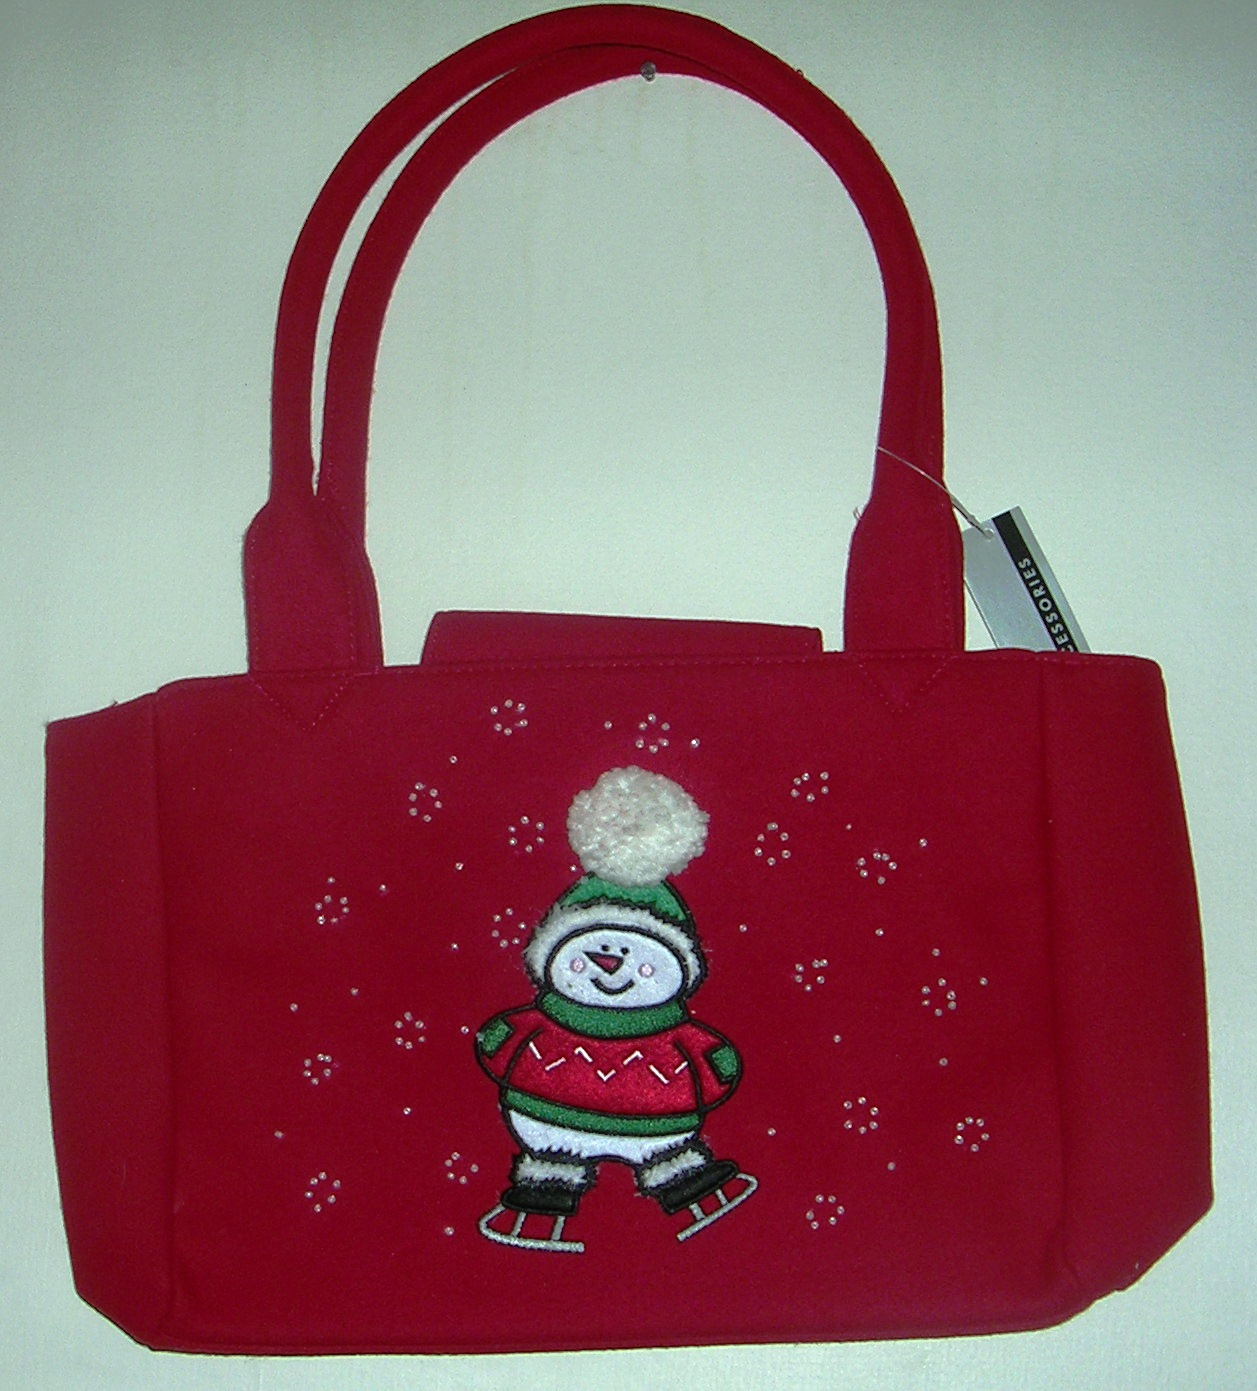 Pocketbook Handbag Purse Snowman On Skates Red